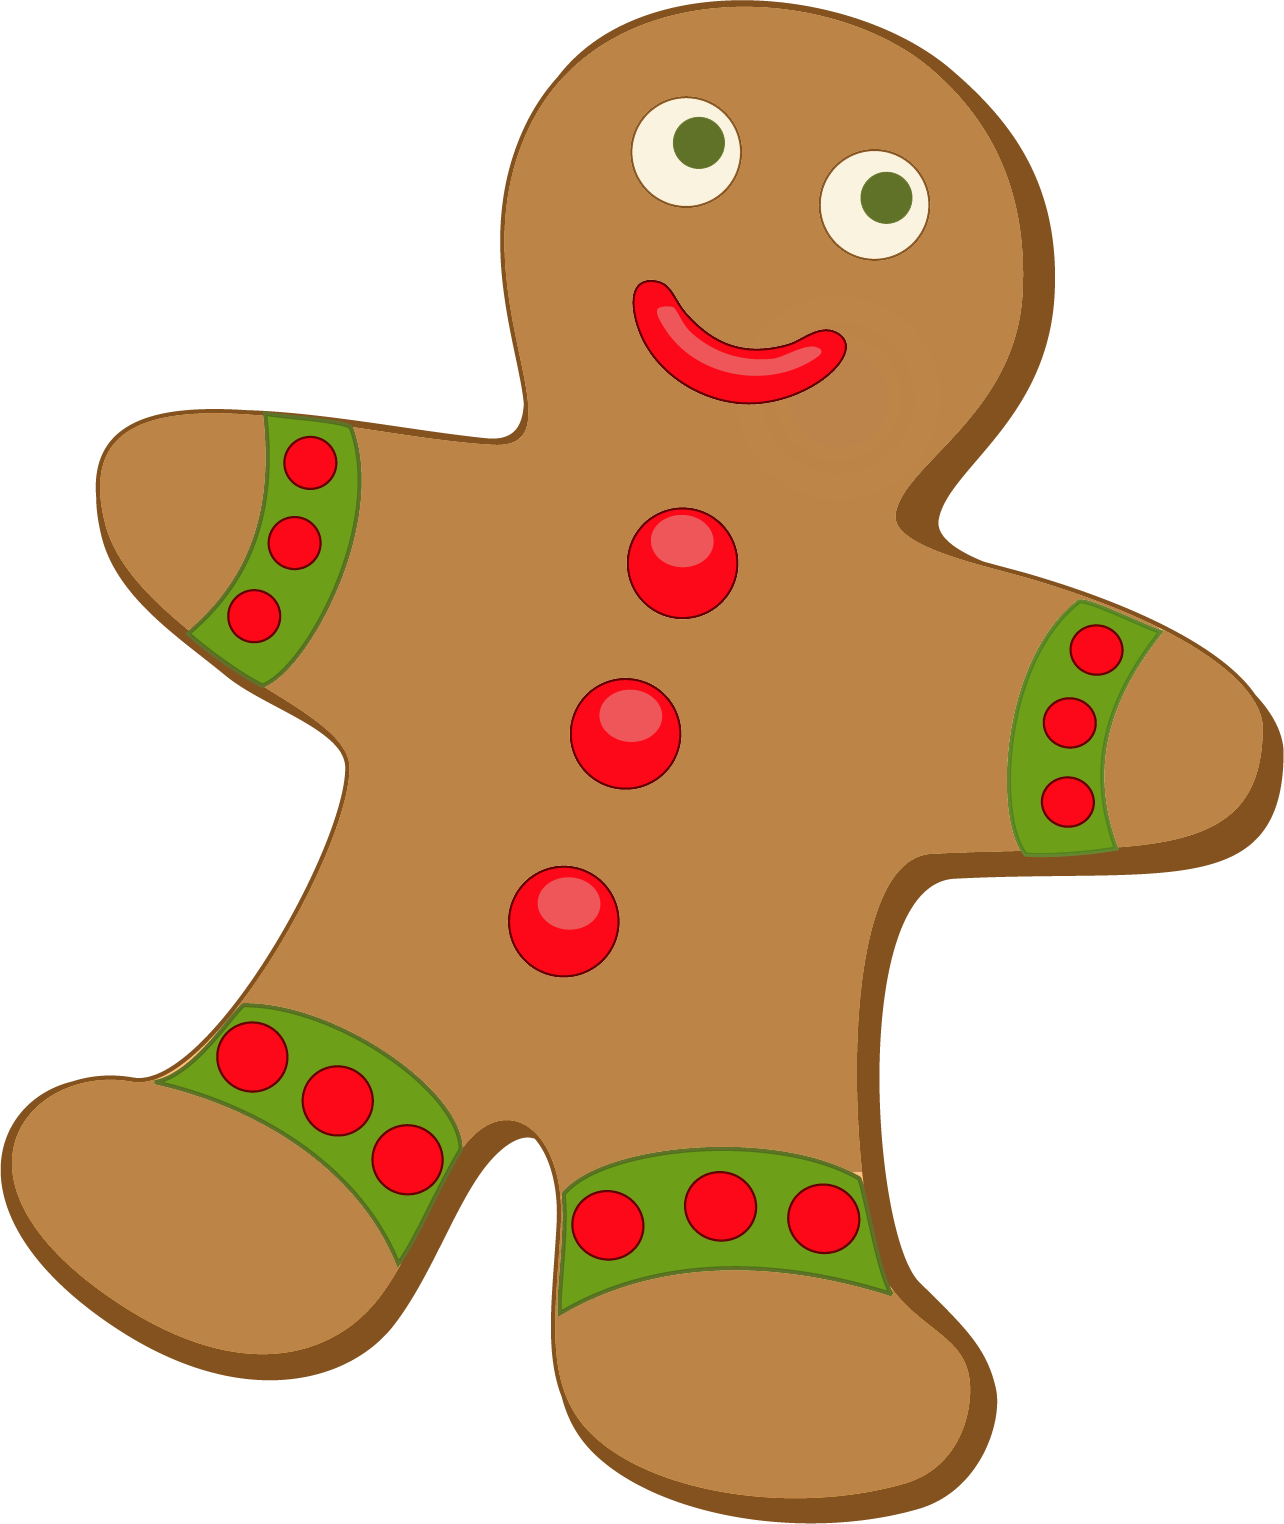 Gingerbread free clipart transparent stock Free Gingerbread Cliparts, Download Free Clip Art, Free Clip Art on ... transparent stock